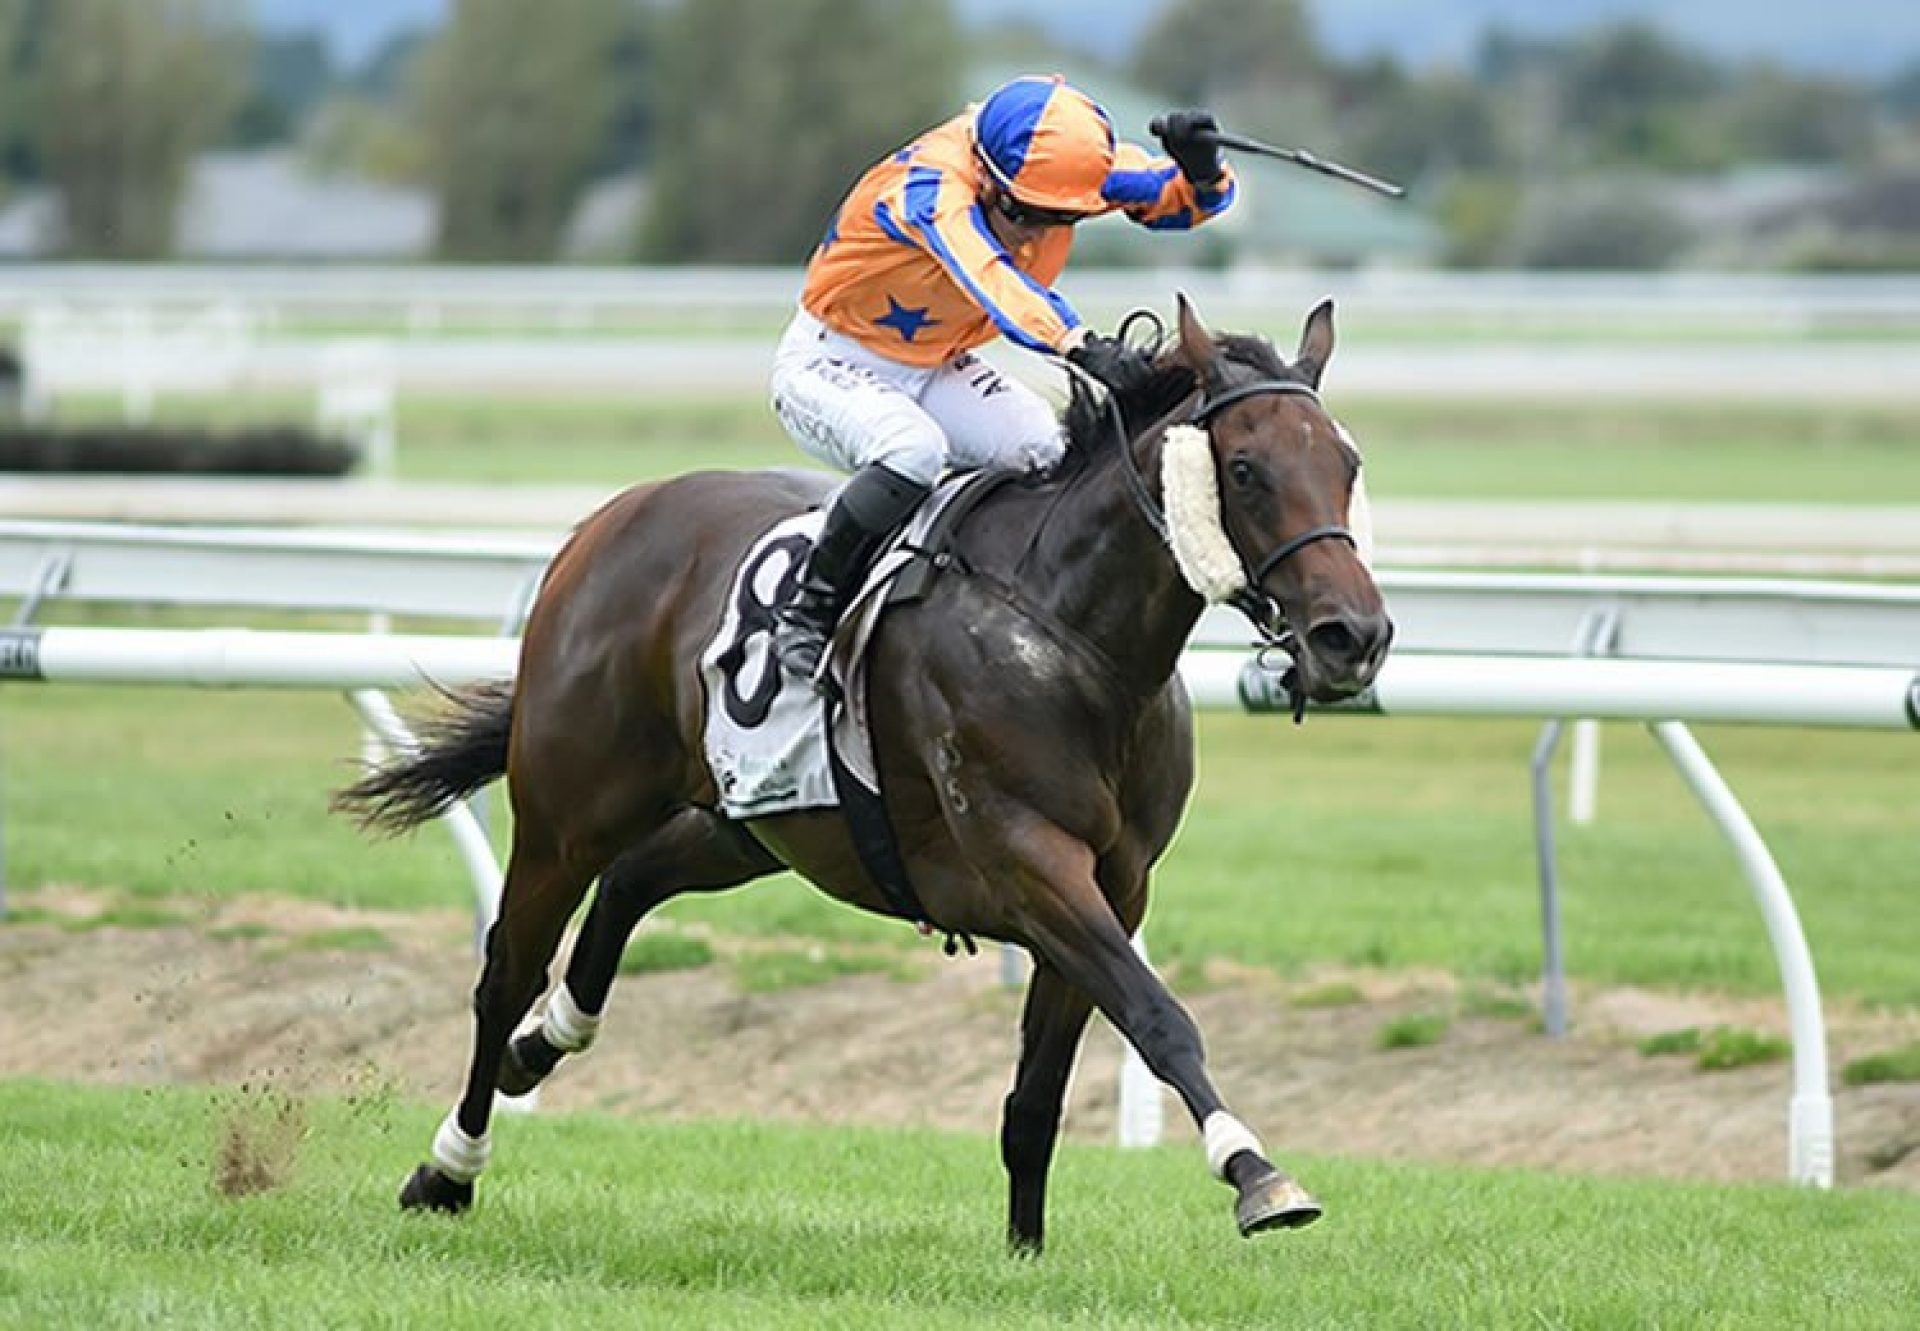 Avantage (Fastnet Rock) winning the G1 Manawatu Sires' Produce Stakes at Awapuni